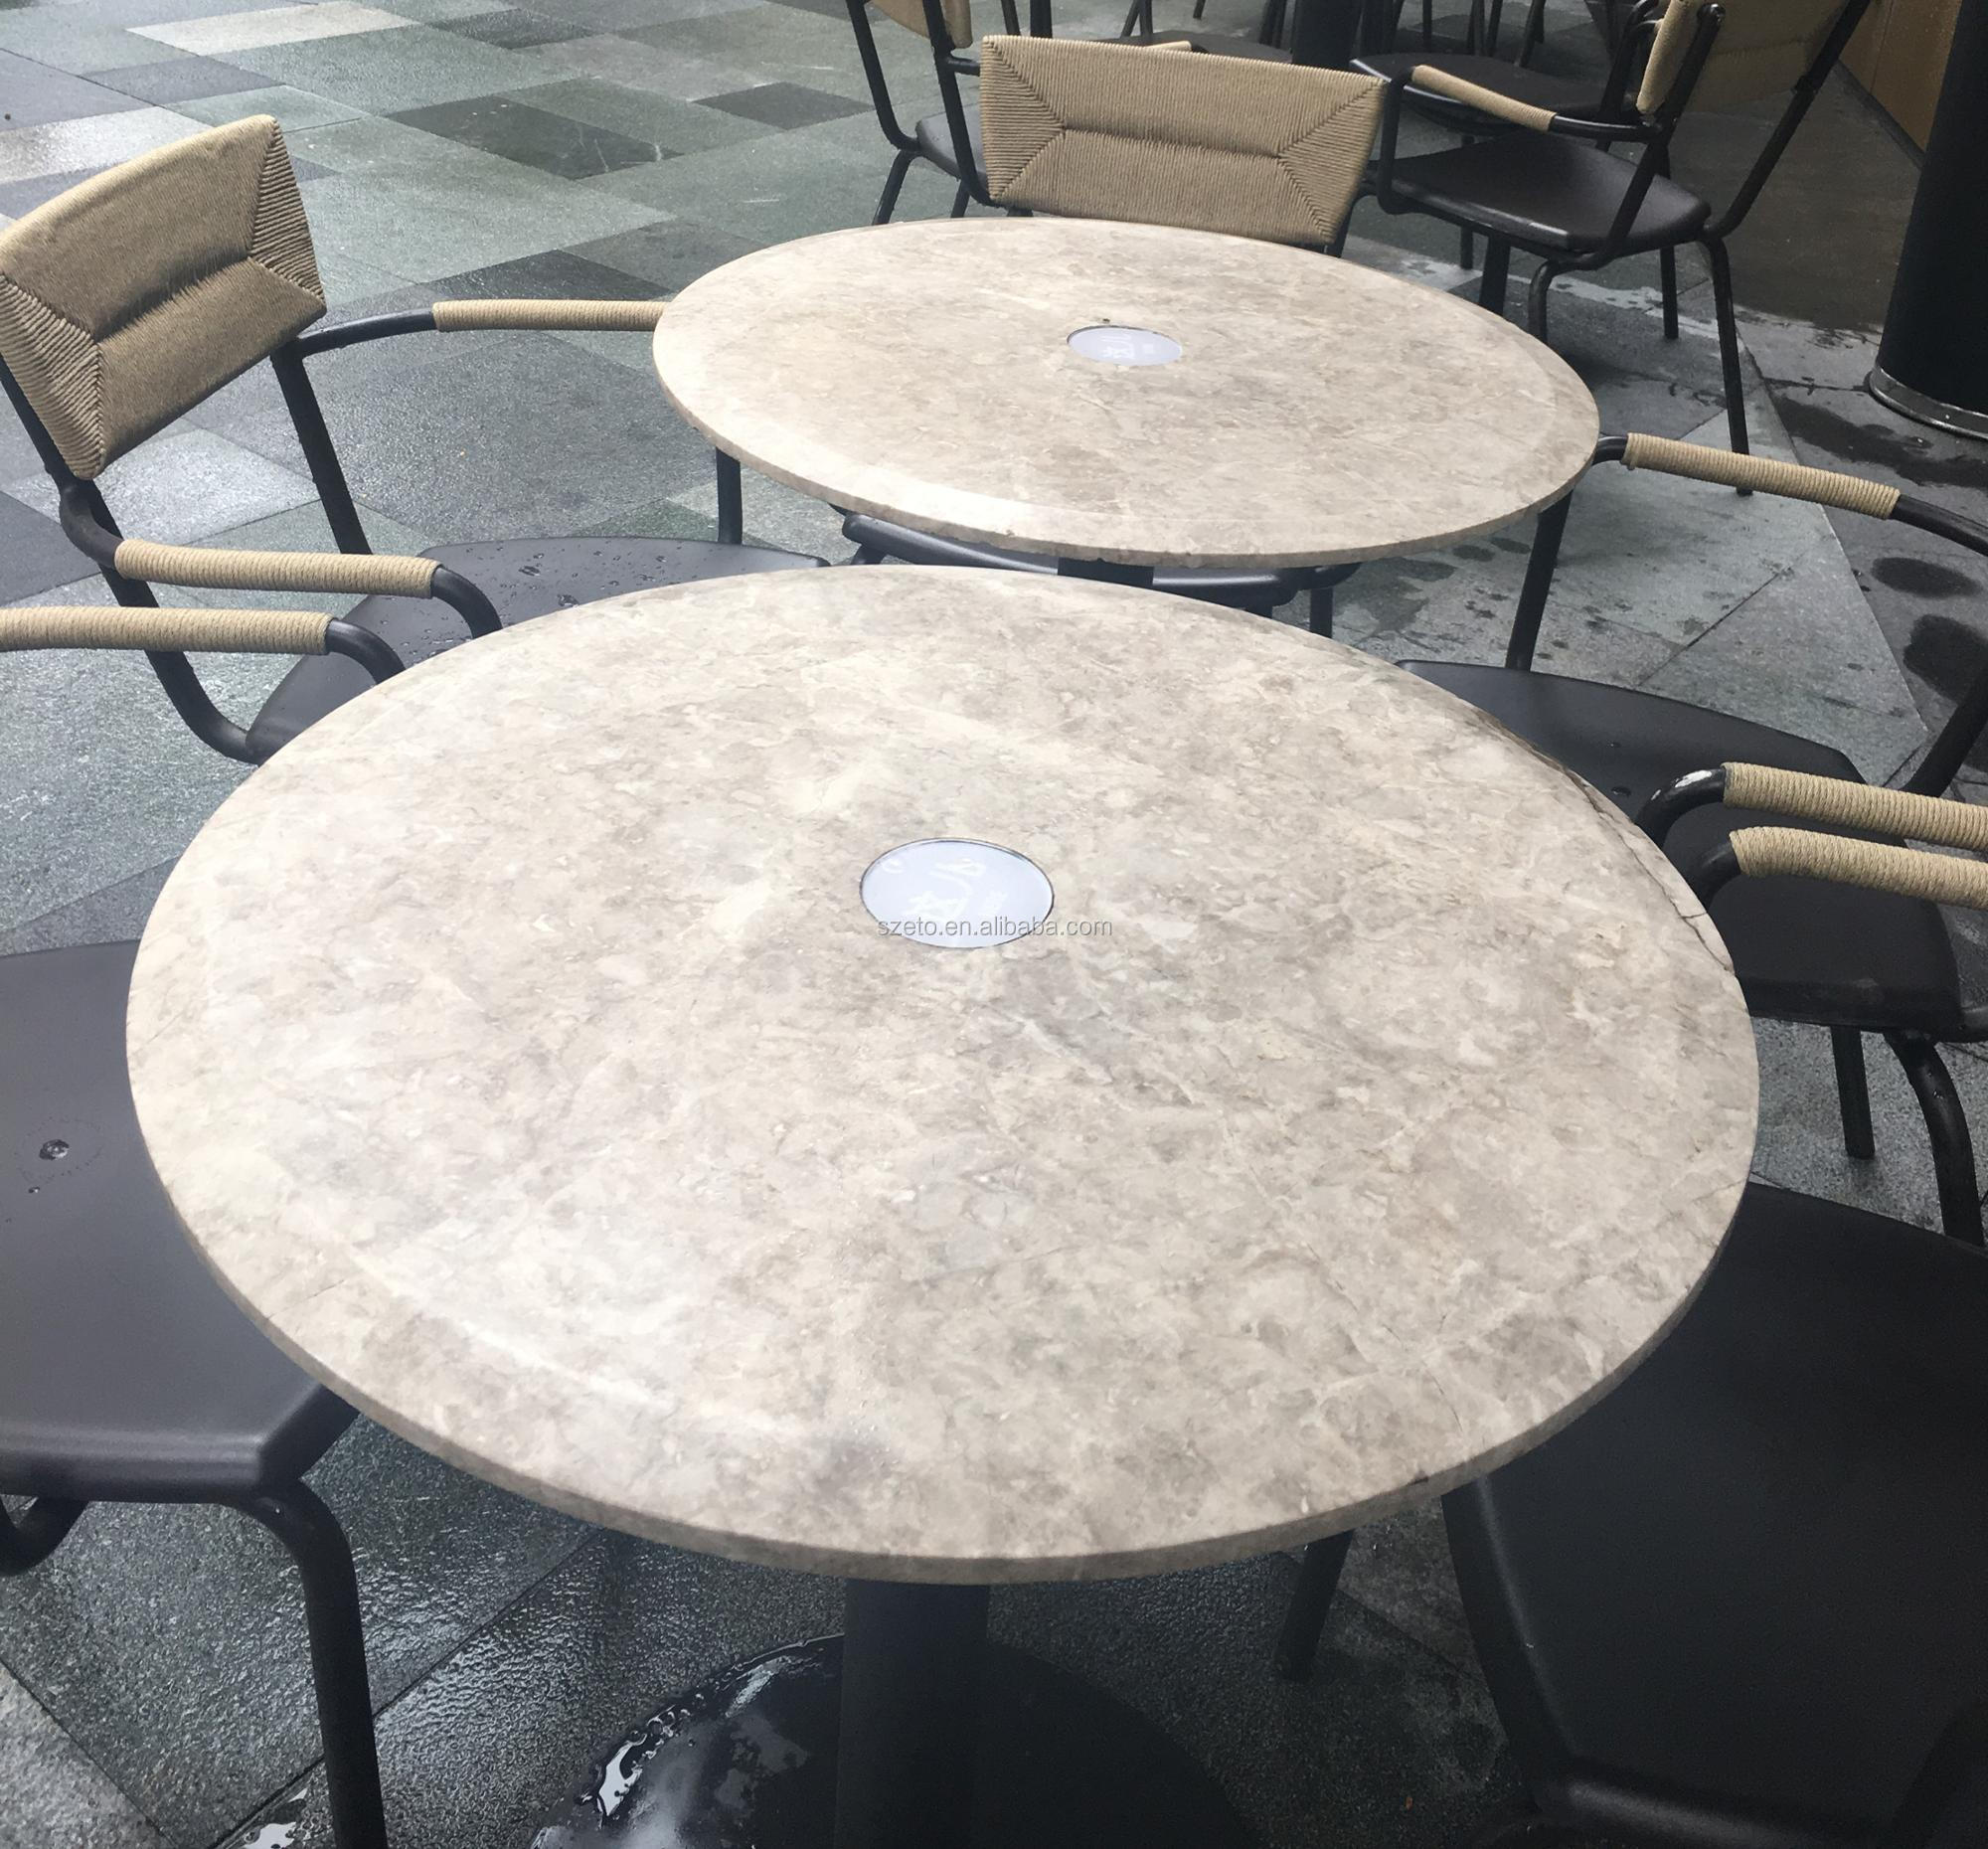 Beau Sf006 Round Travertine Stone Table Top   Buy Marble Coffee Table Top,Marble  Top Center Table Design,Round Travertine Stone Table Top Product On ...